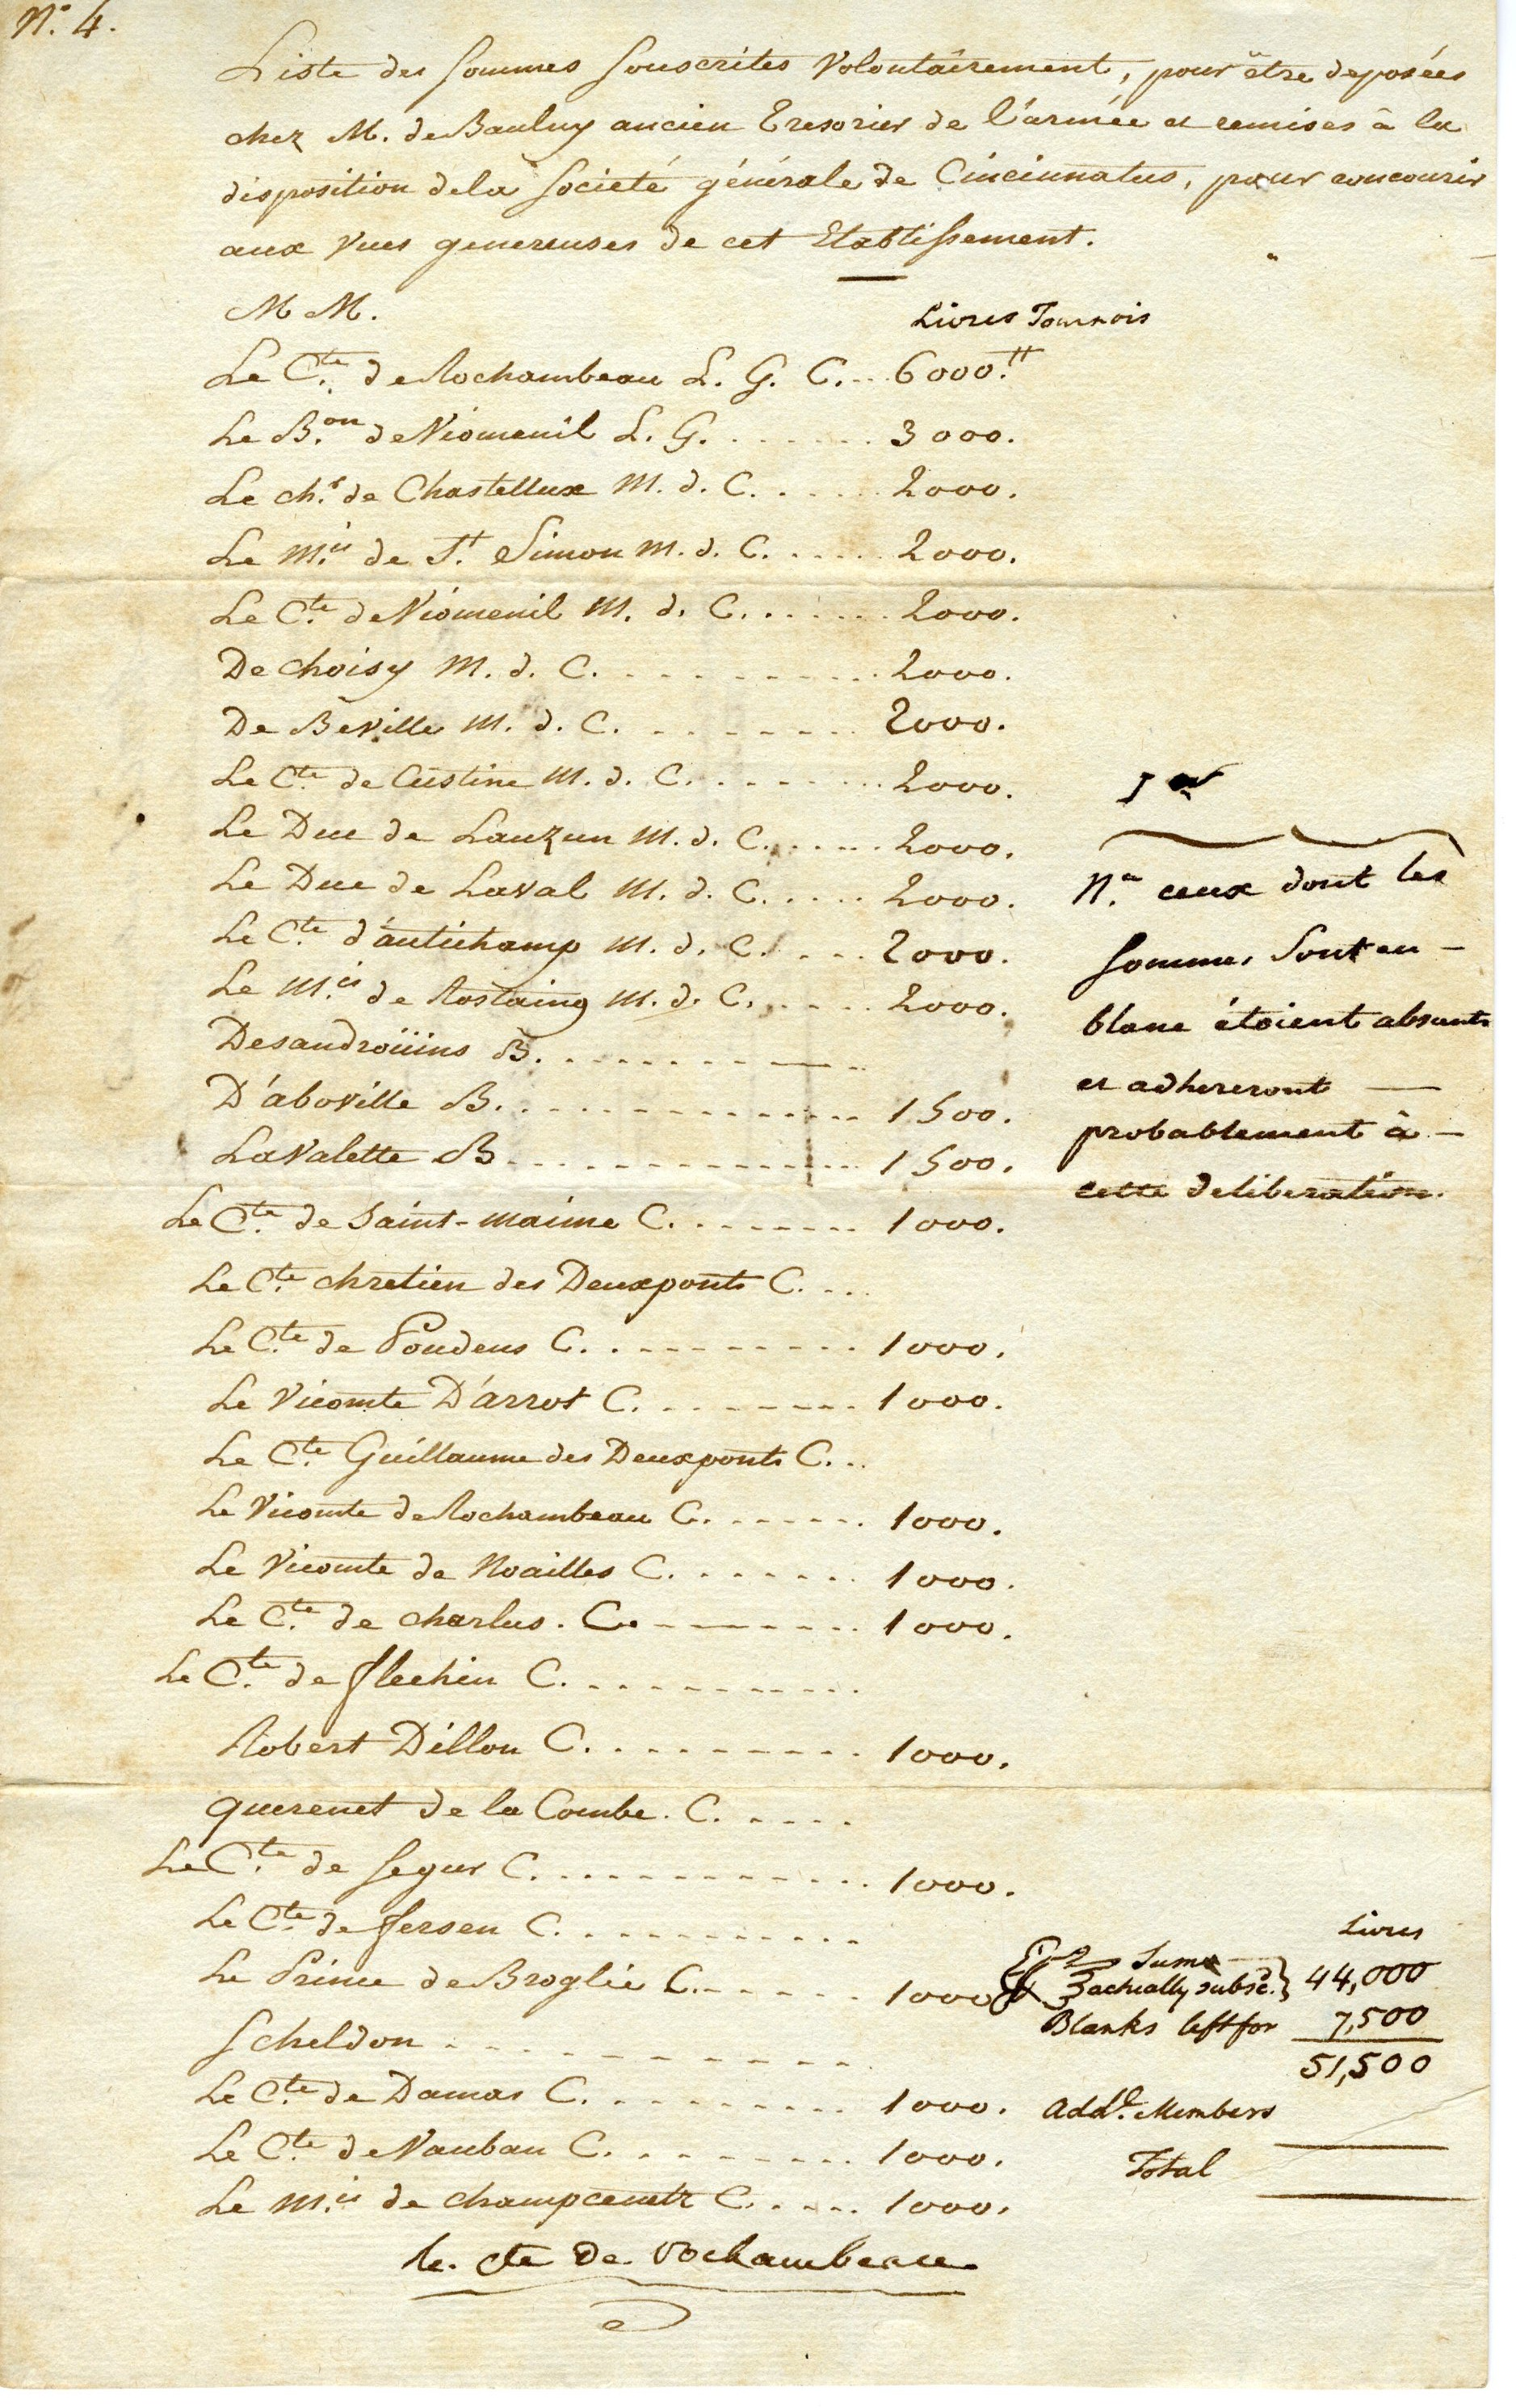 French Society list of subscribers, January 19, 1784